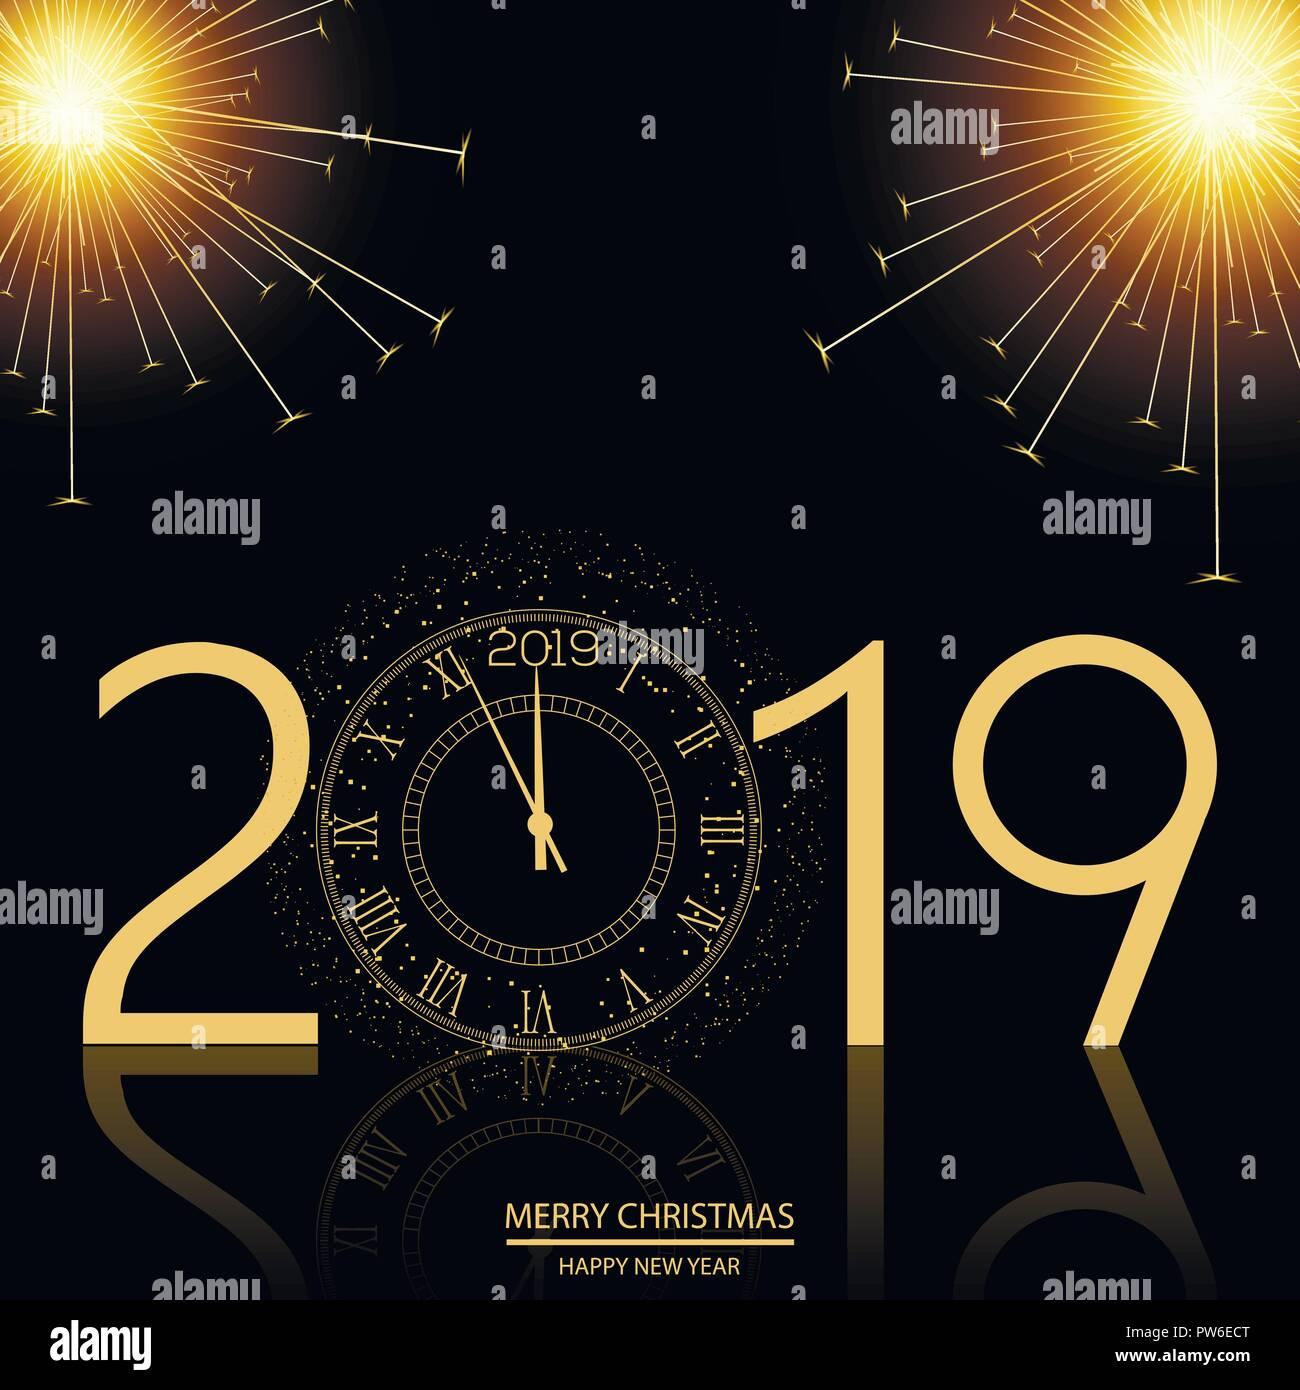 christmas and happy new year background with clock vector